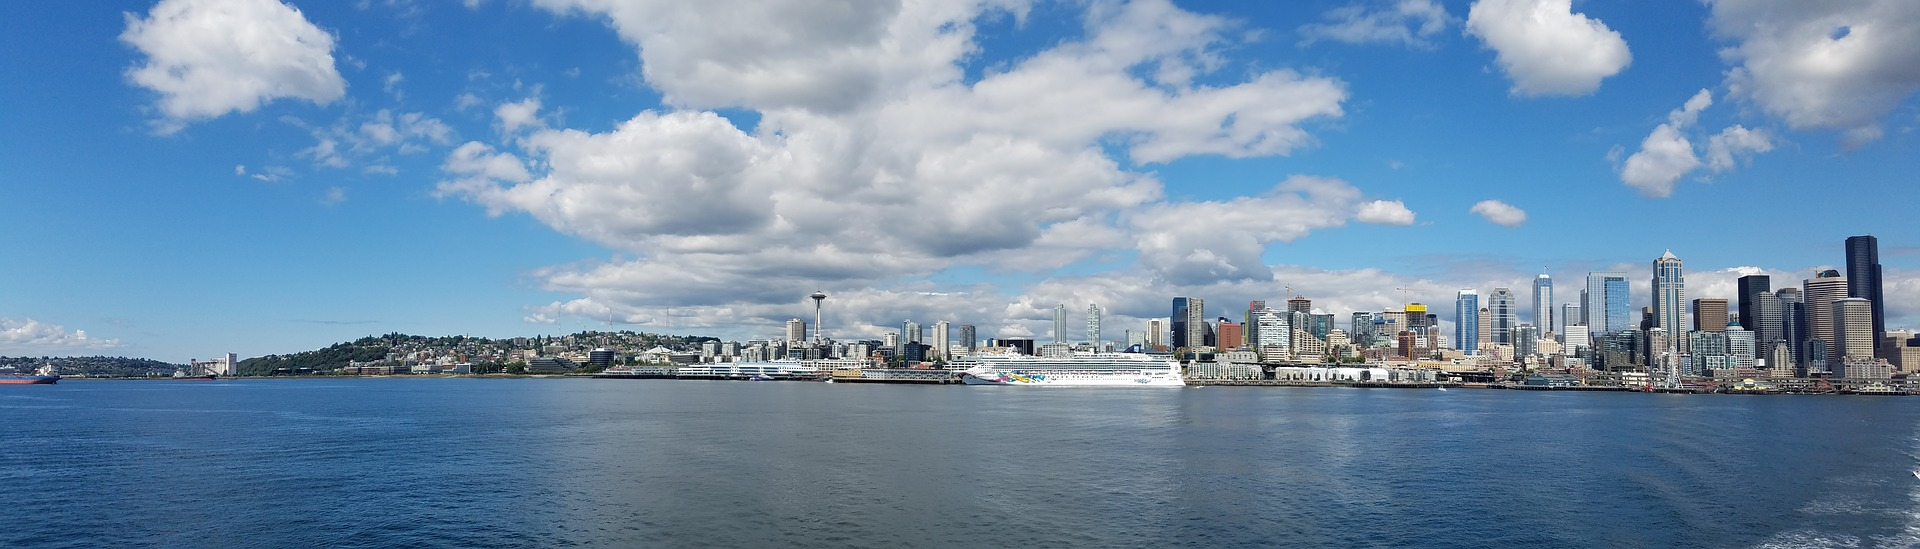 Panoramic view of Seattle, Washington